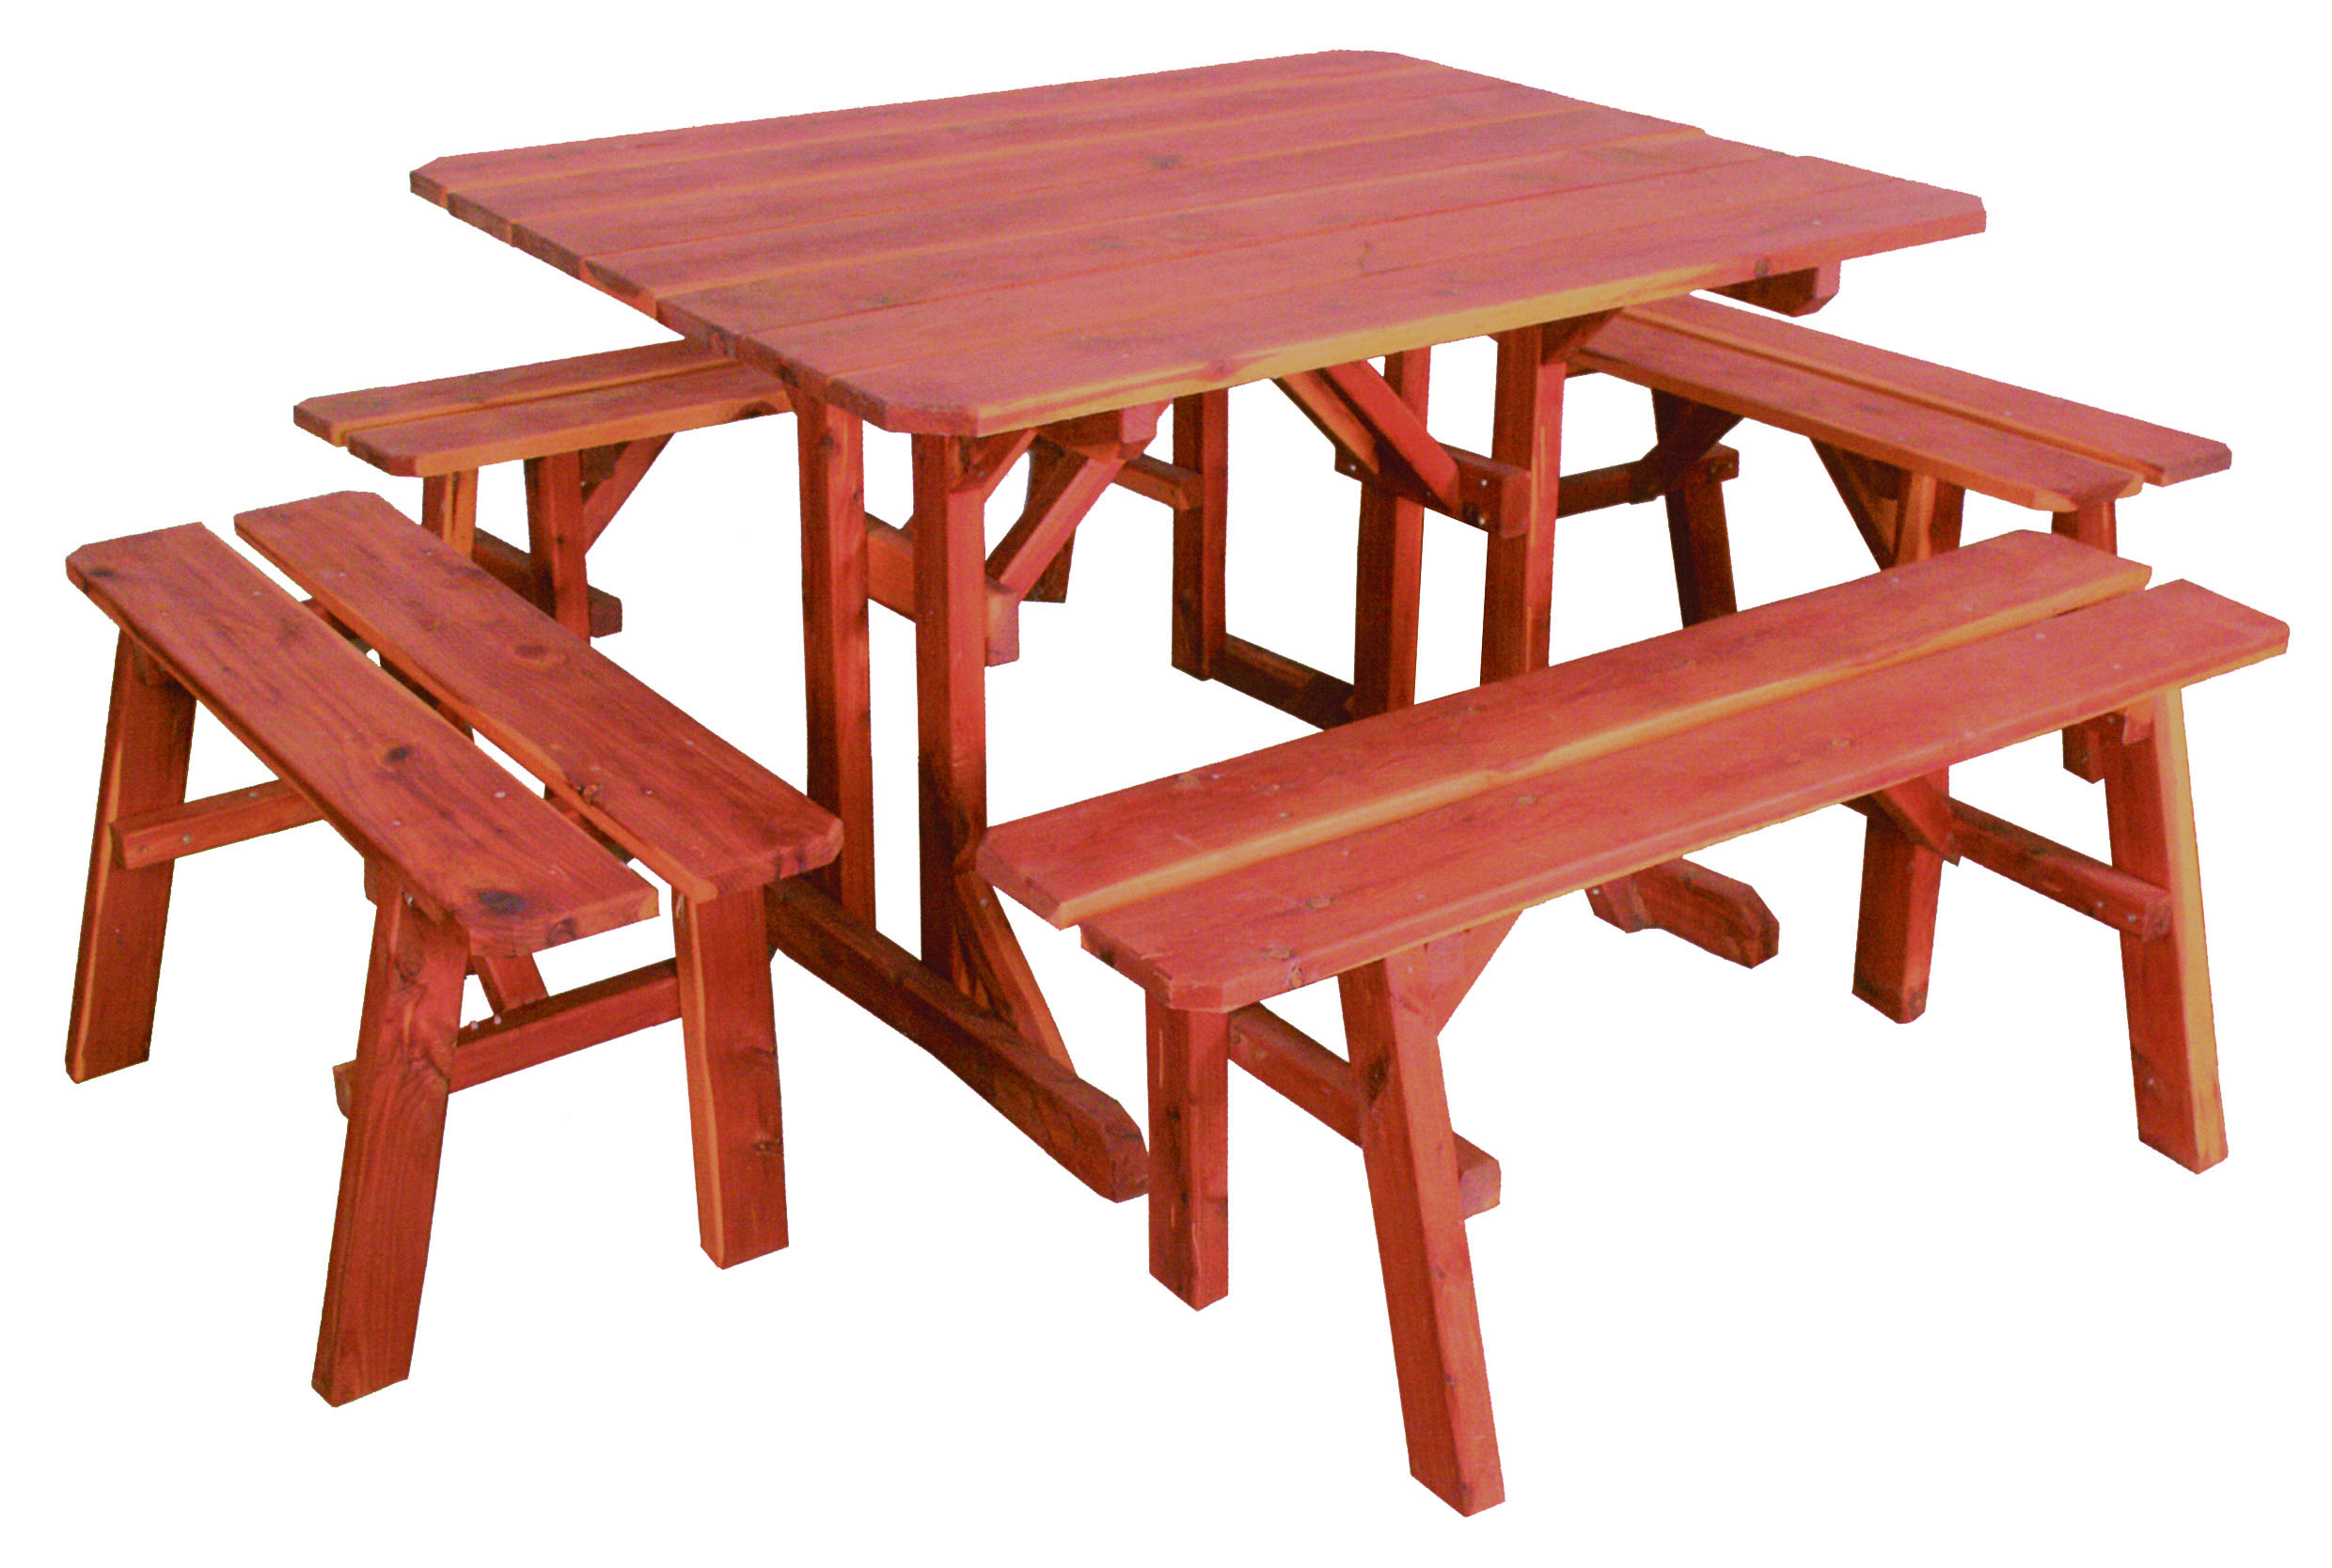 Rustic Red Cedar Picnic Tables - Sturgeon River Pottery ...